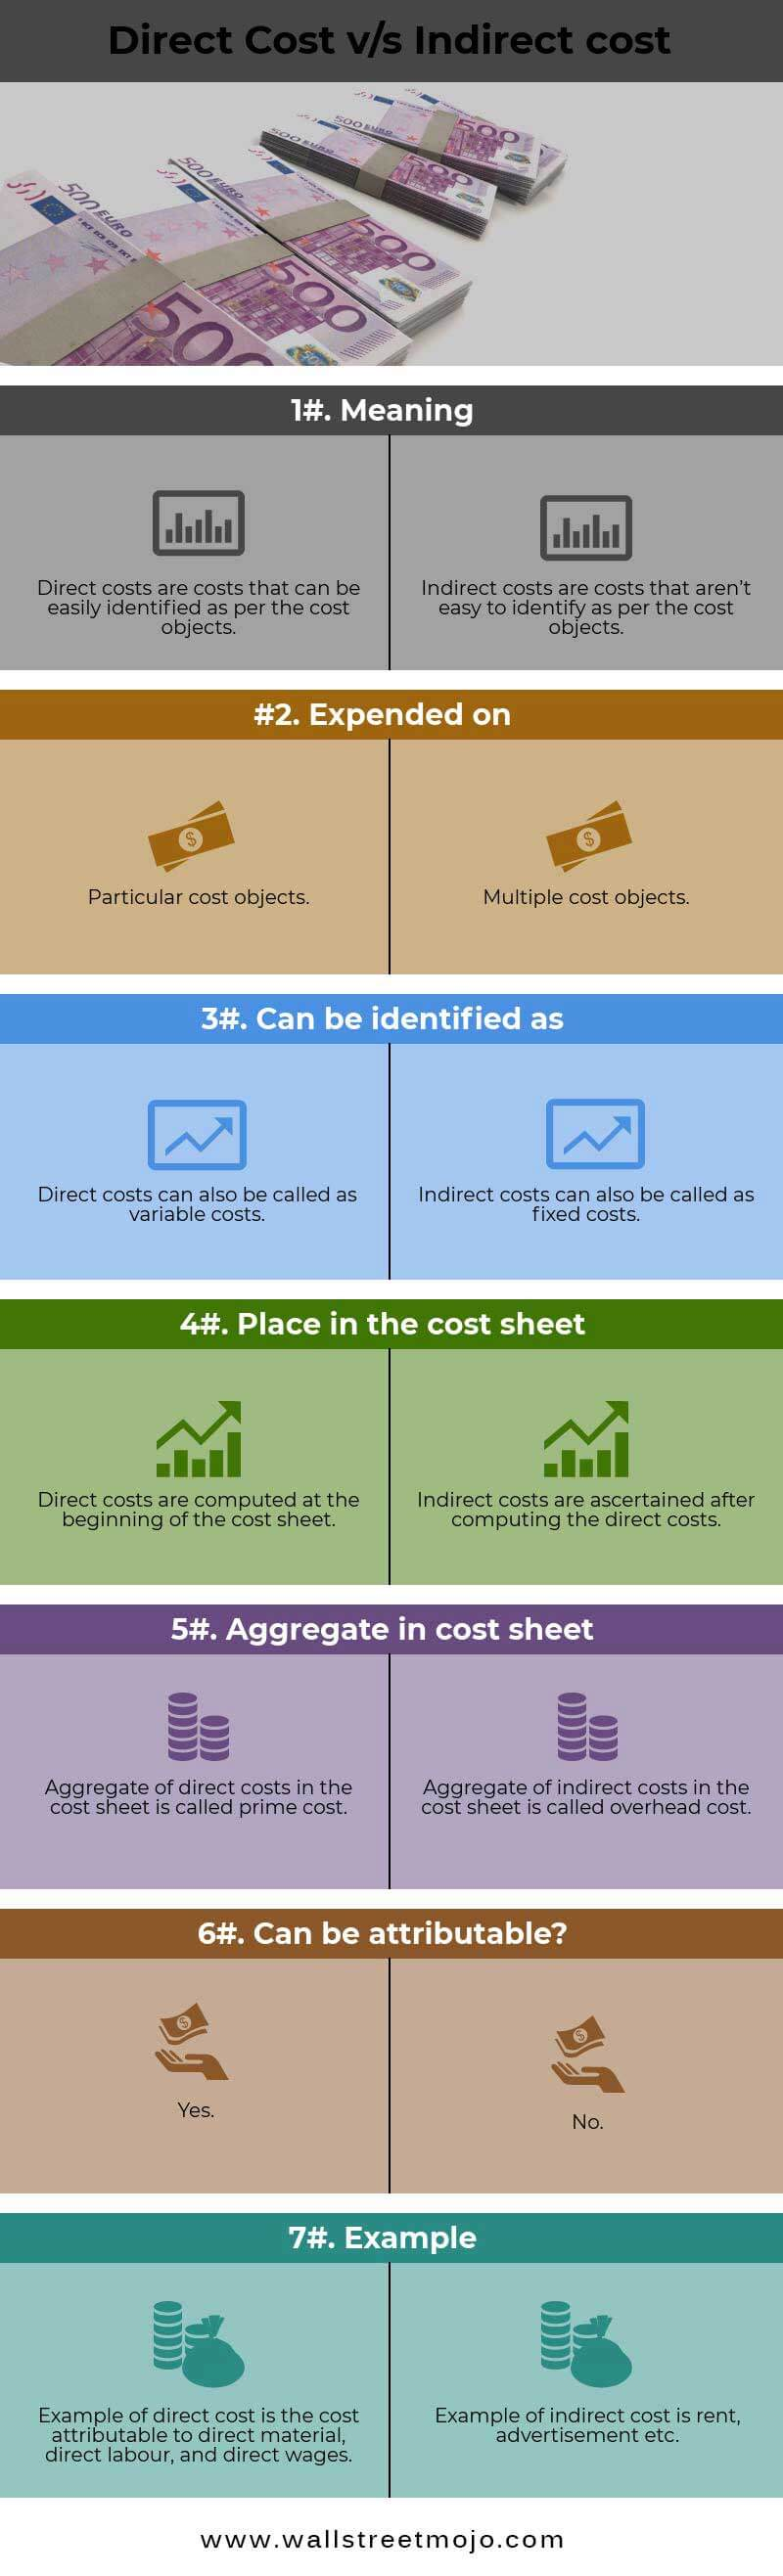 Direct and indirect costs 86